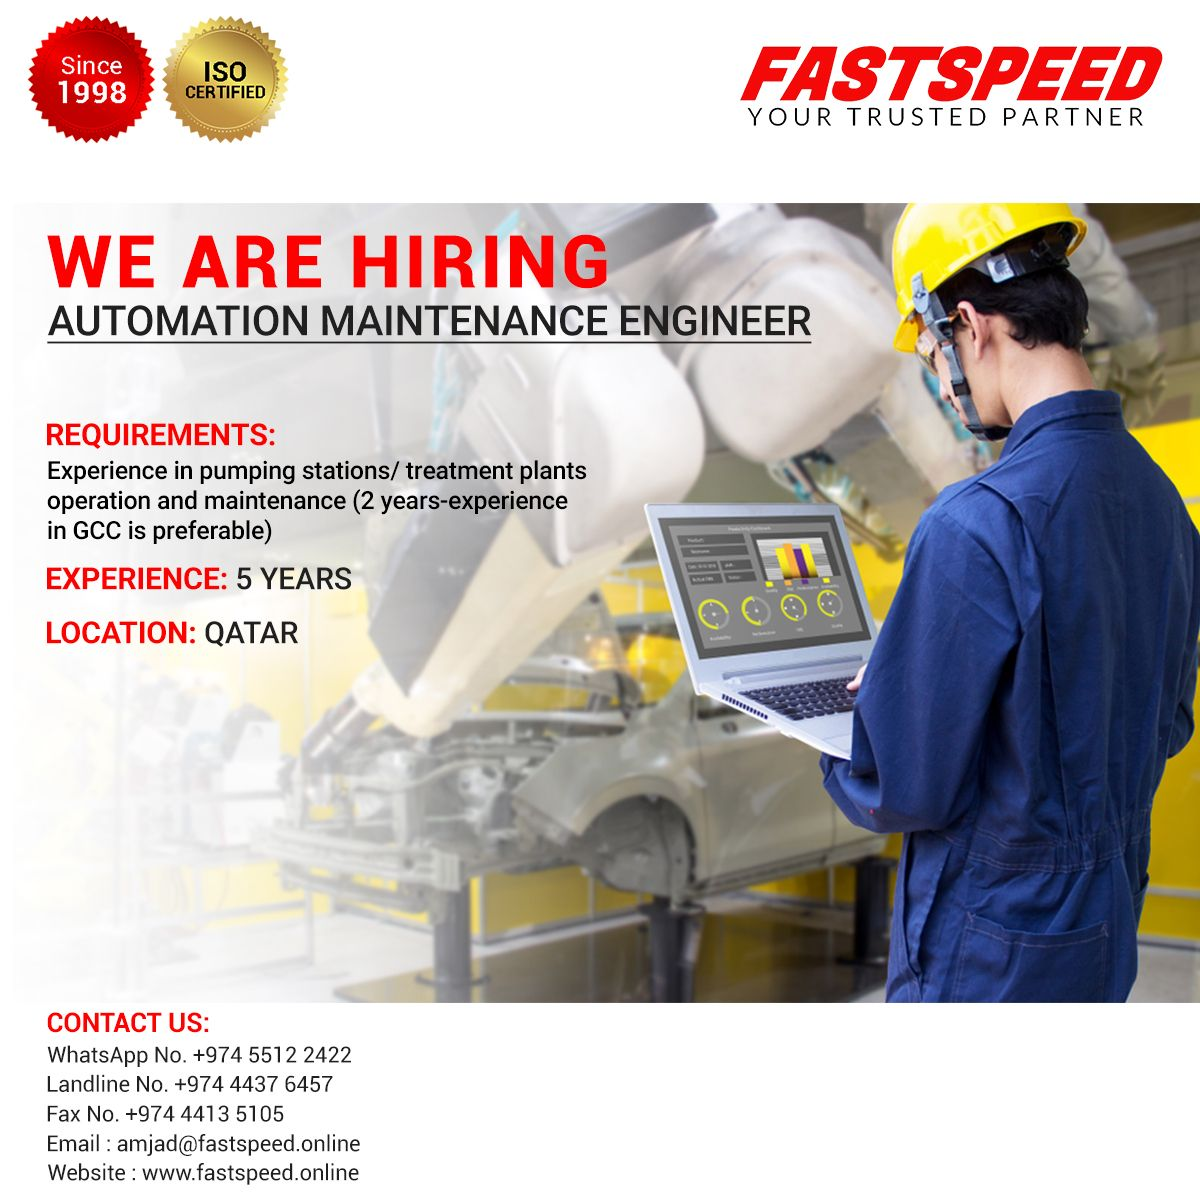 We are now recruiting automation maintenance engineers at